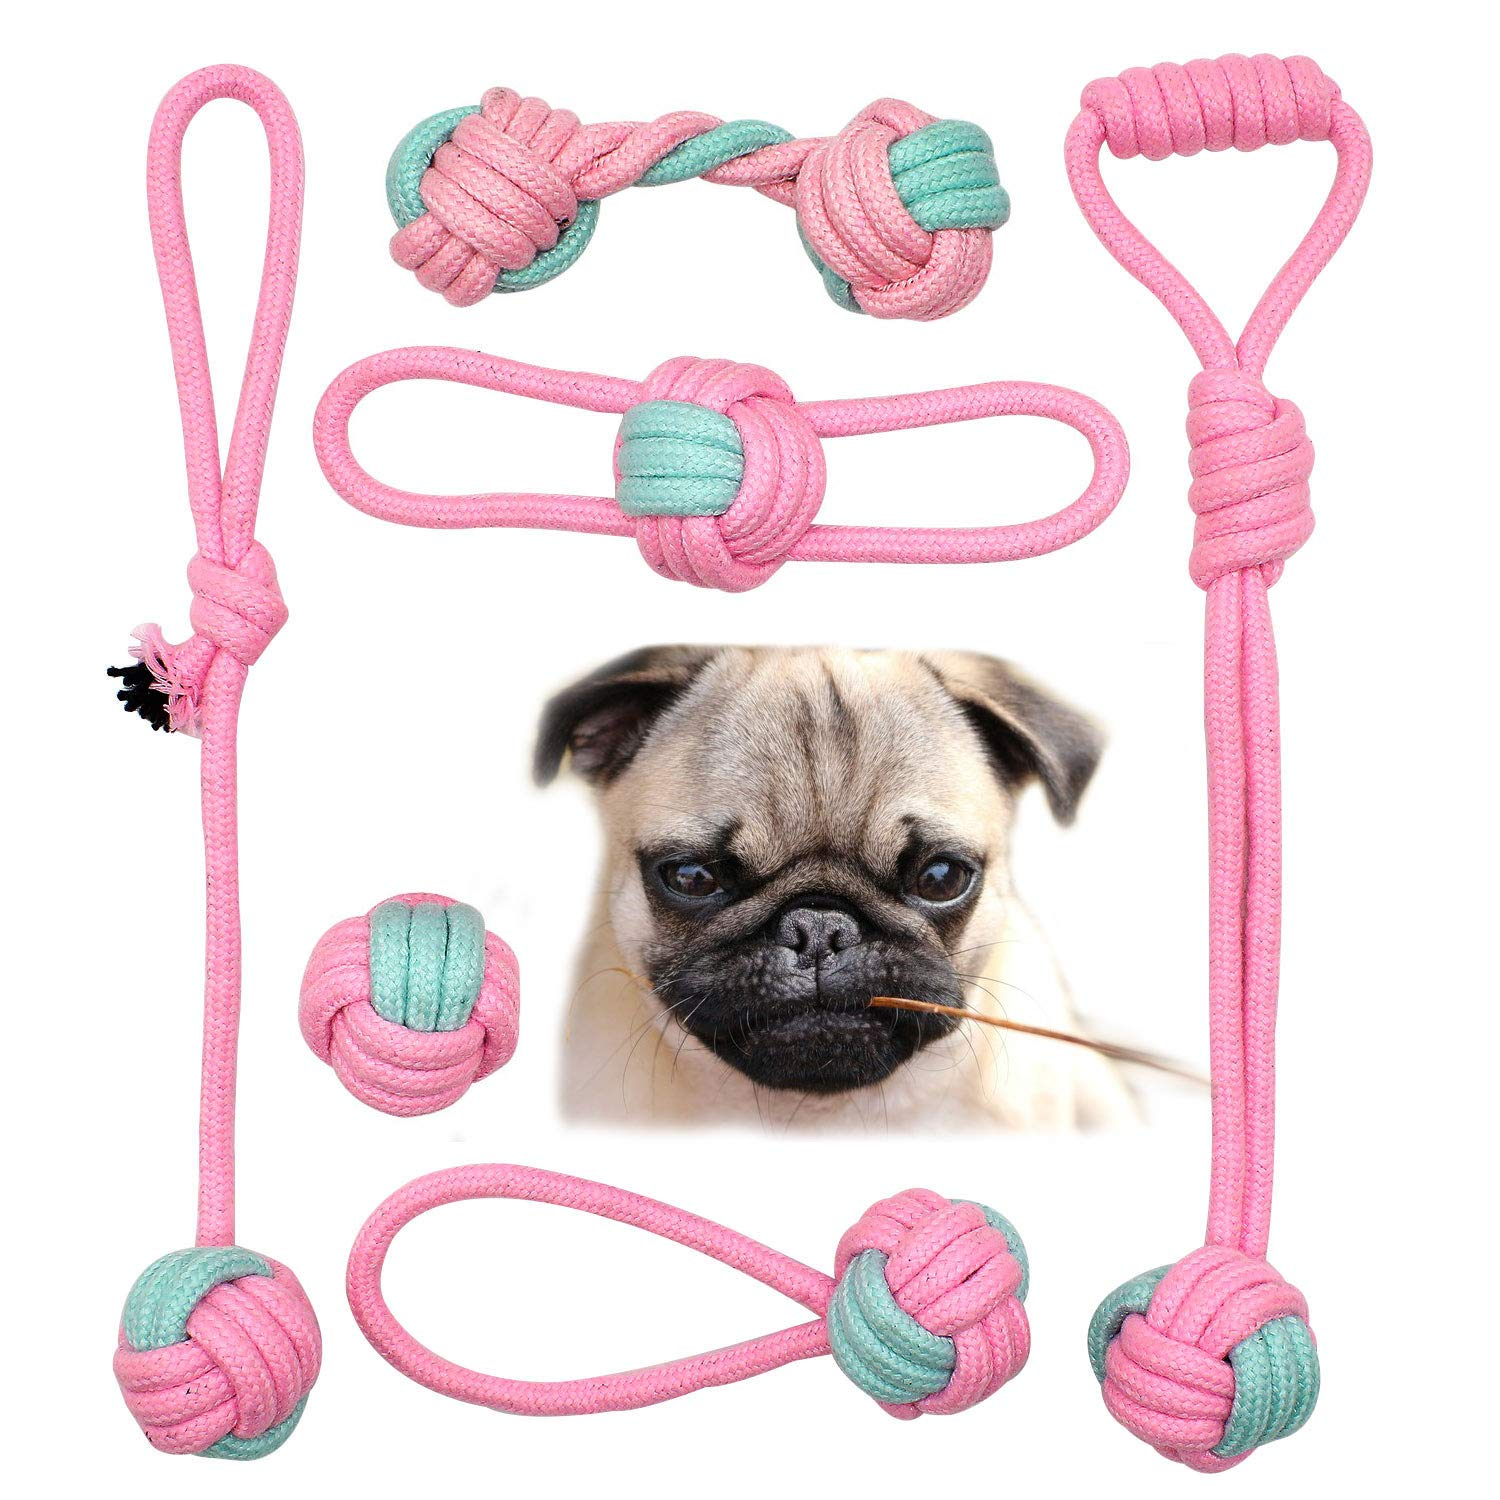 DLDER Dog Rope Toys, Tug of War Interactive Rope - Dog Teeching Toys - Fetch Ball for Chewer